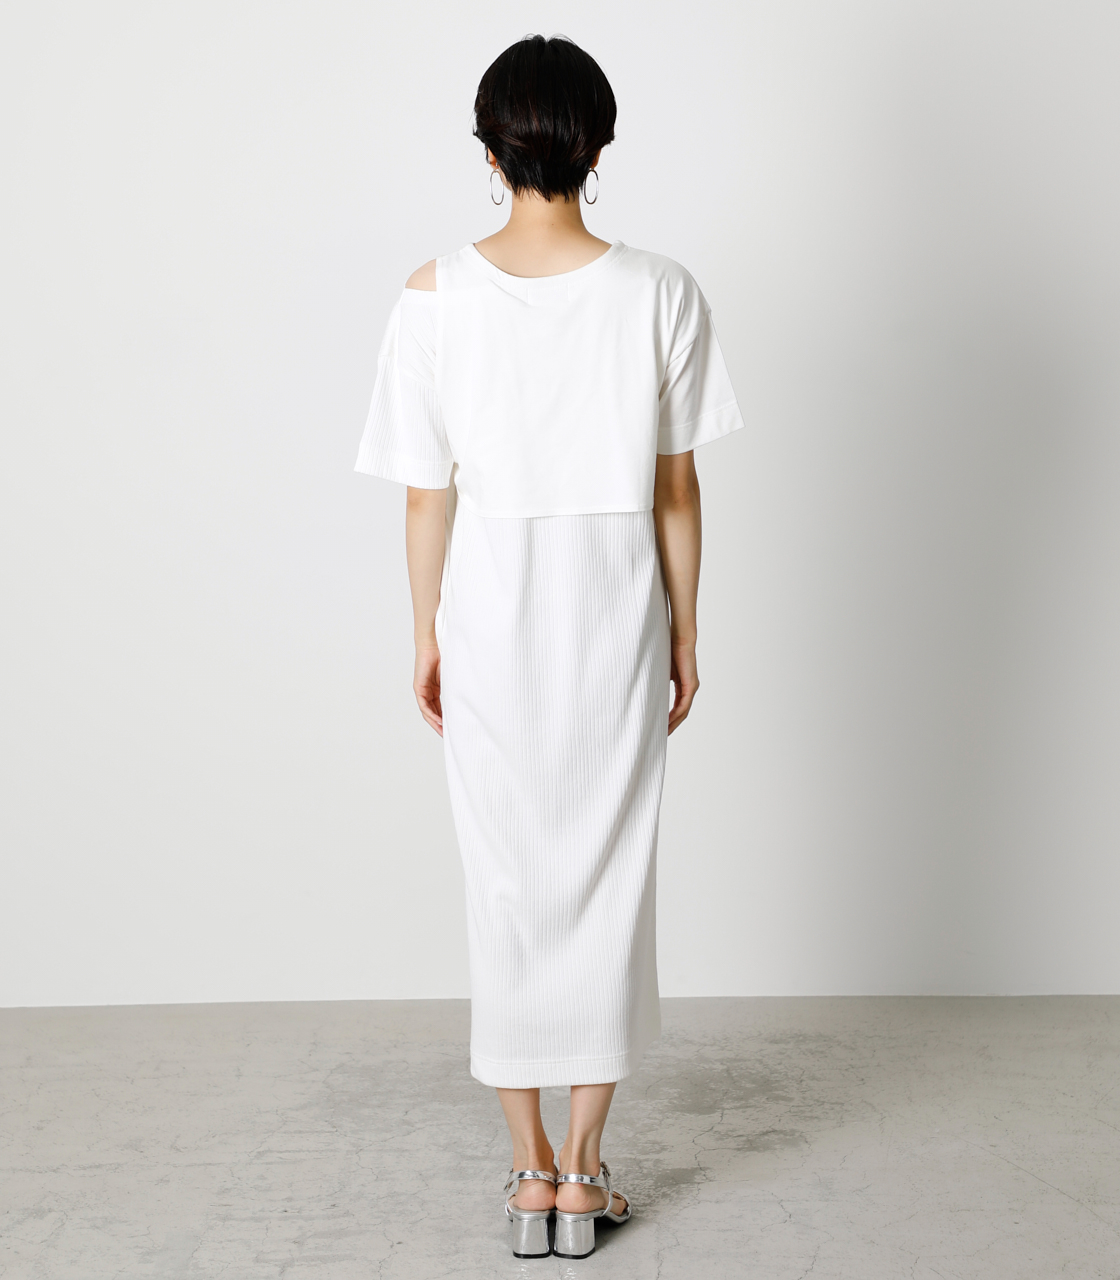 FRONT LINK ONEPIECE/フロントリンクワンピース 詳細画像 O/WHT 6